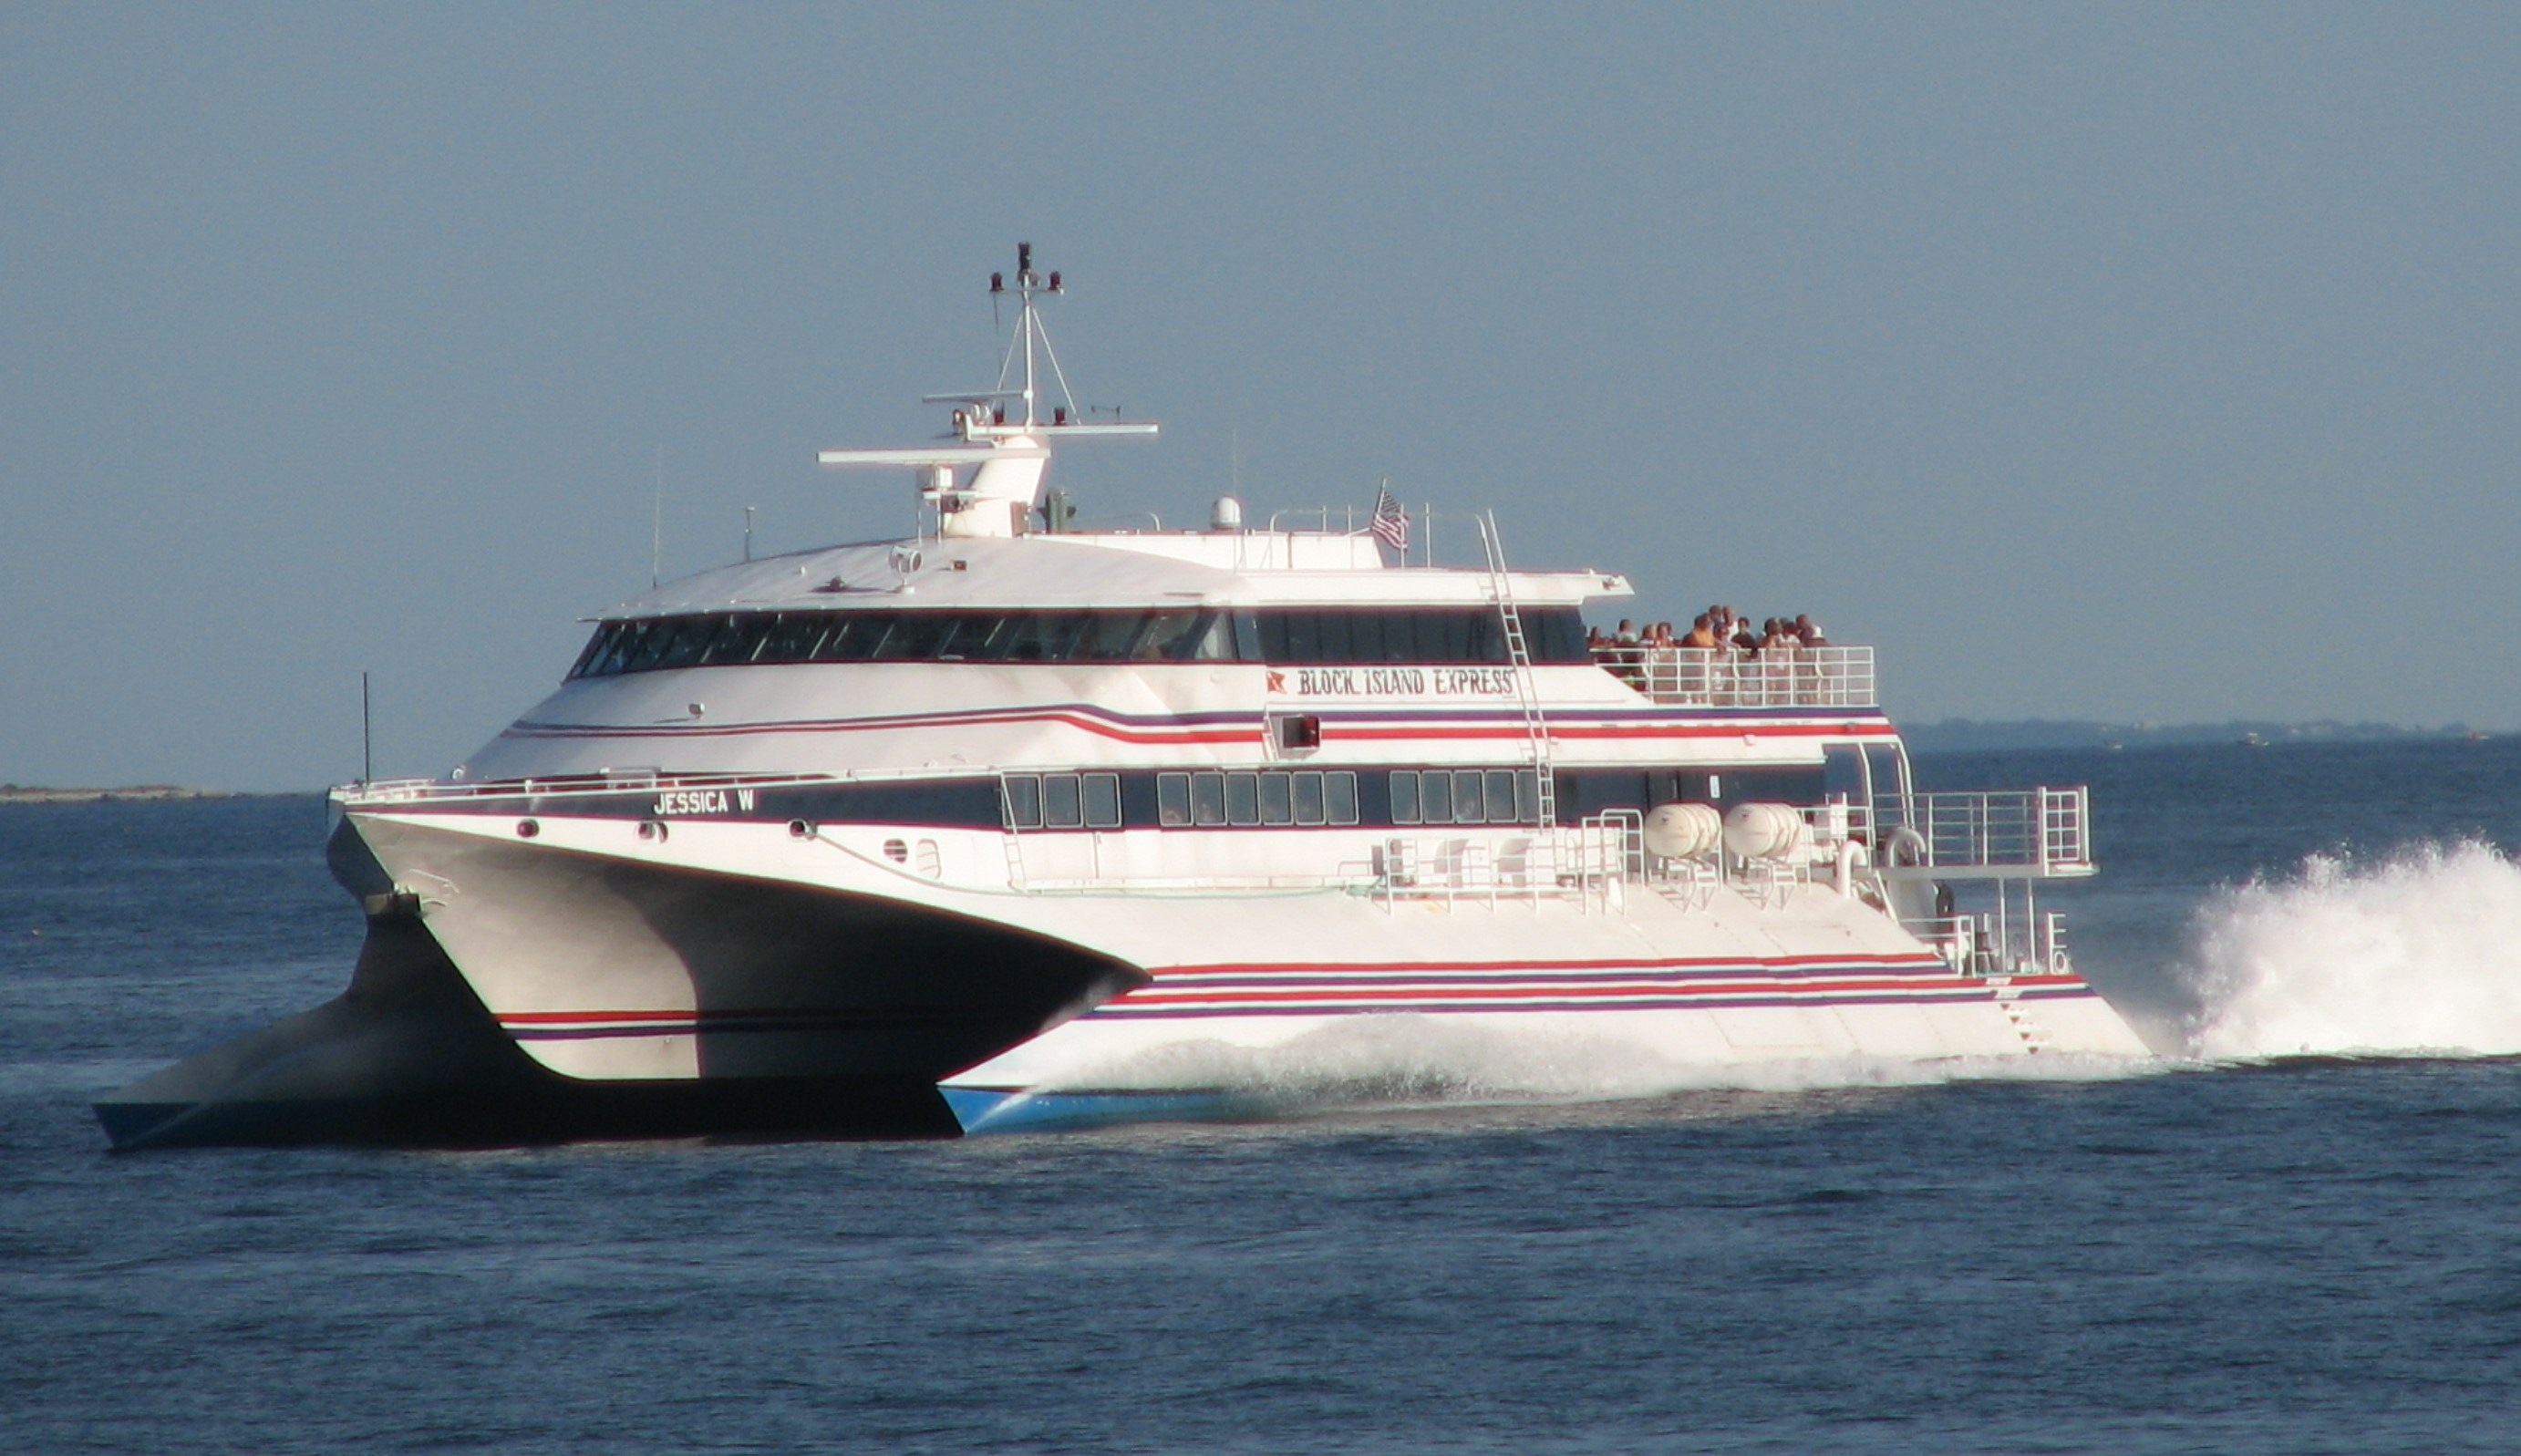 New london to block island ri ferry visit ct sciox Gallery